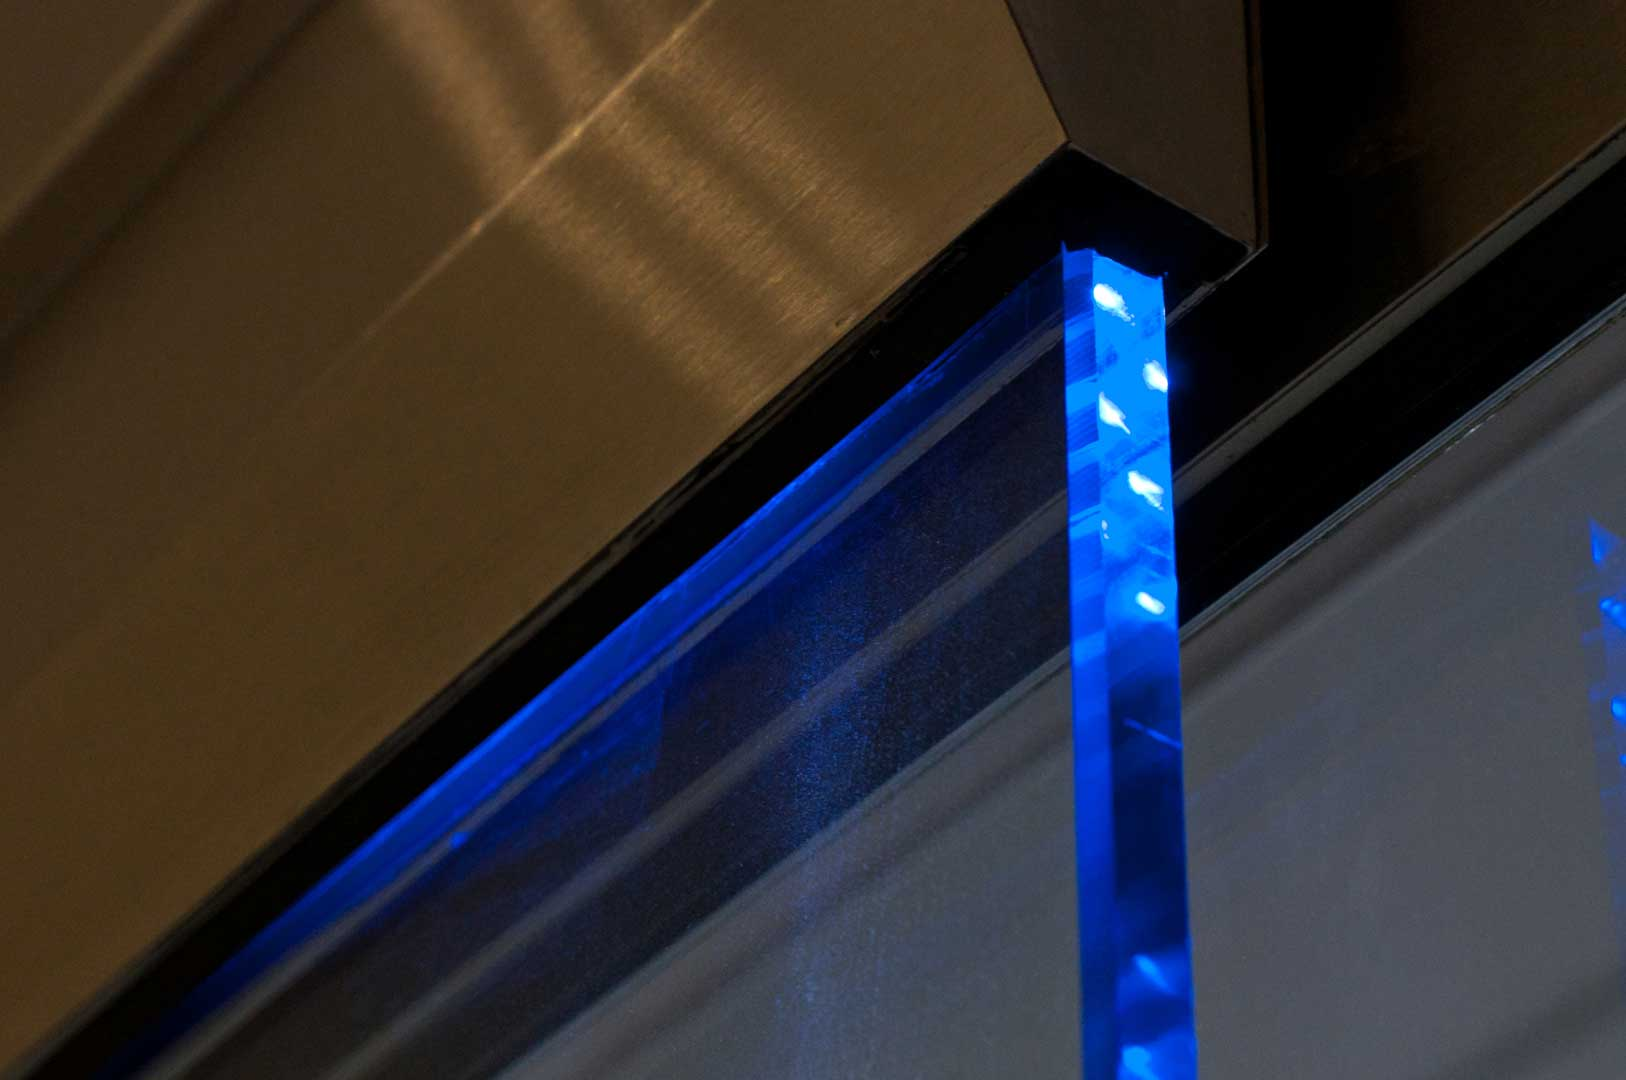 Blue lights shine through glass on Tormax sliding door system in Toronto installed by Explore1.ca